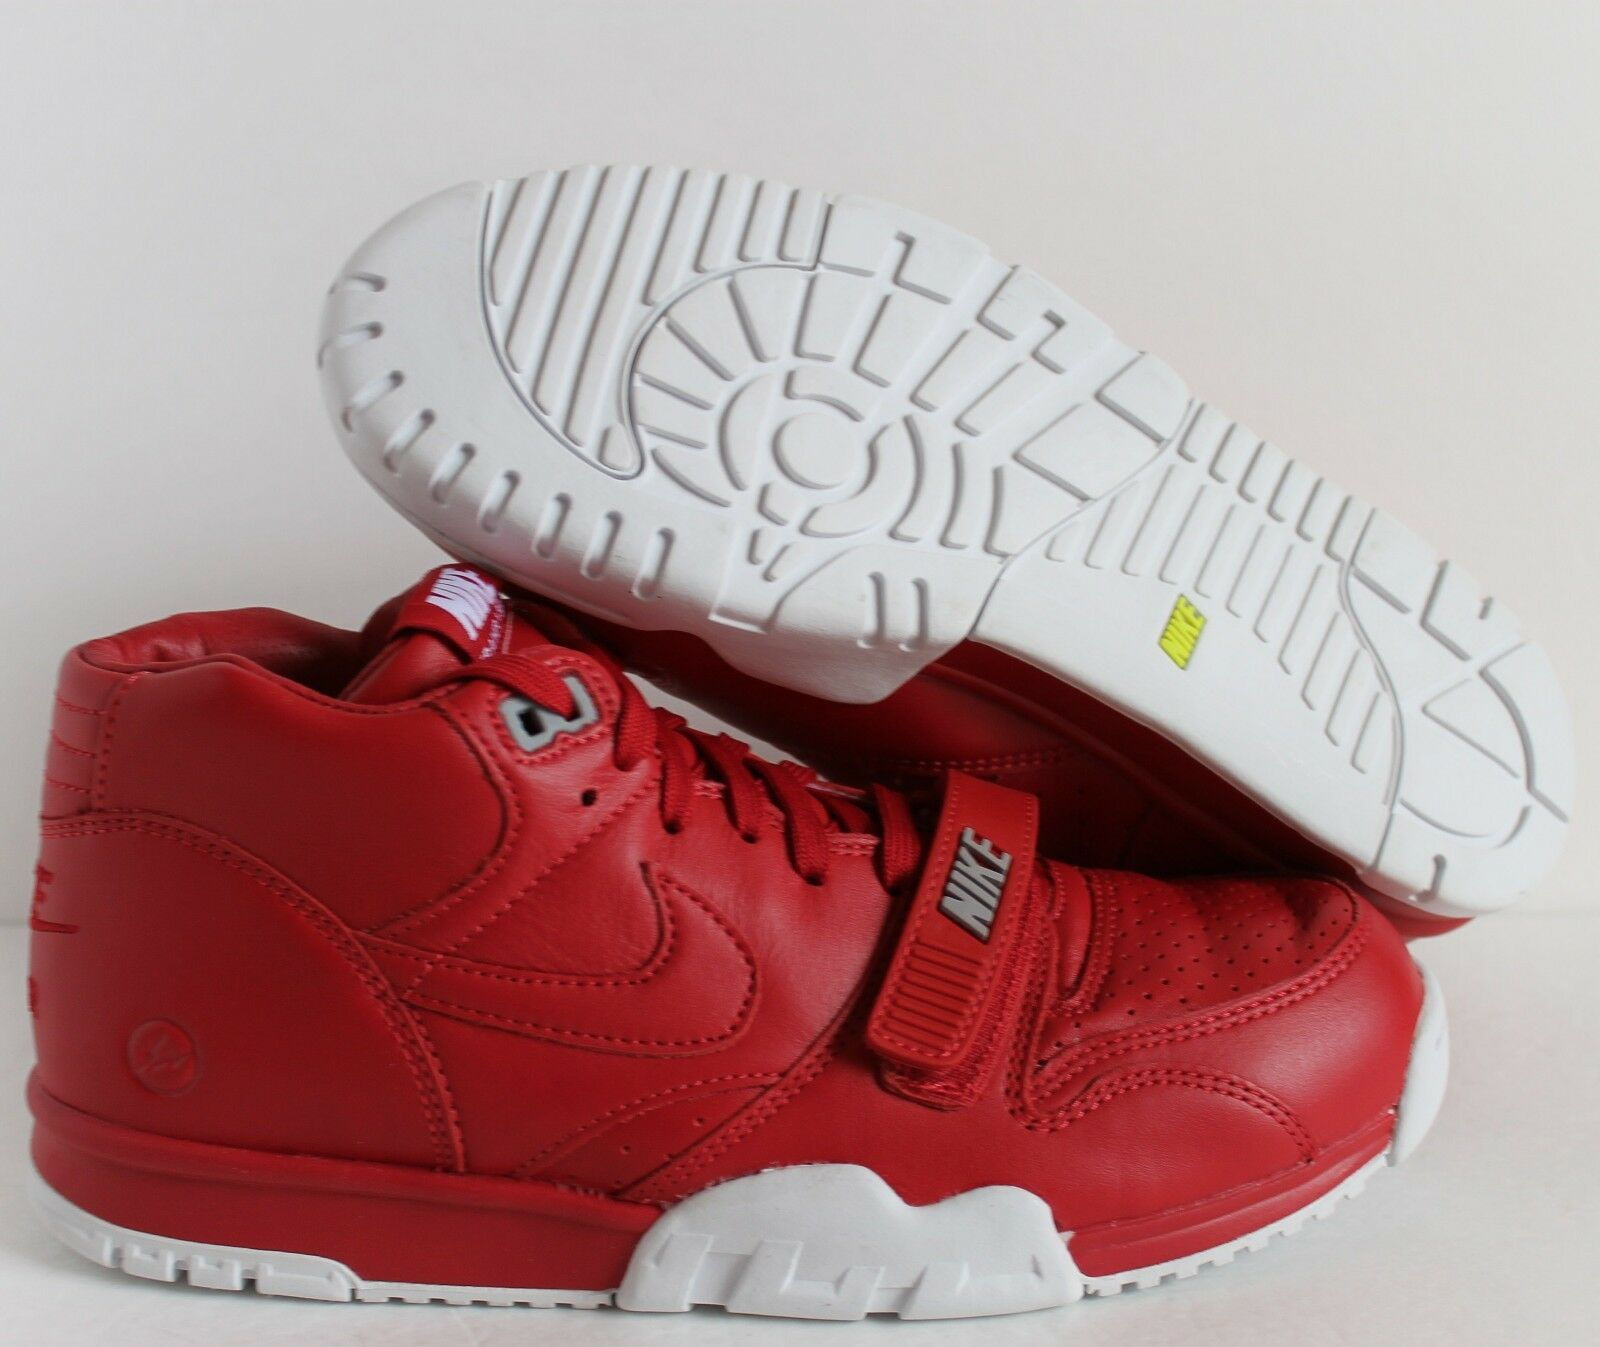 NIKE AIR TRAINER 1 MID SP/FRAGMENT GYM RED RED OCTOBER SZ 10.5  [806942-661]